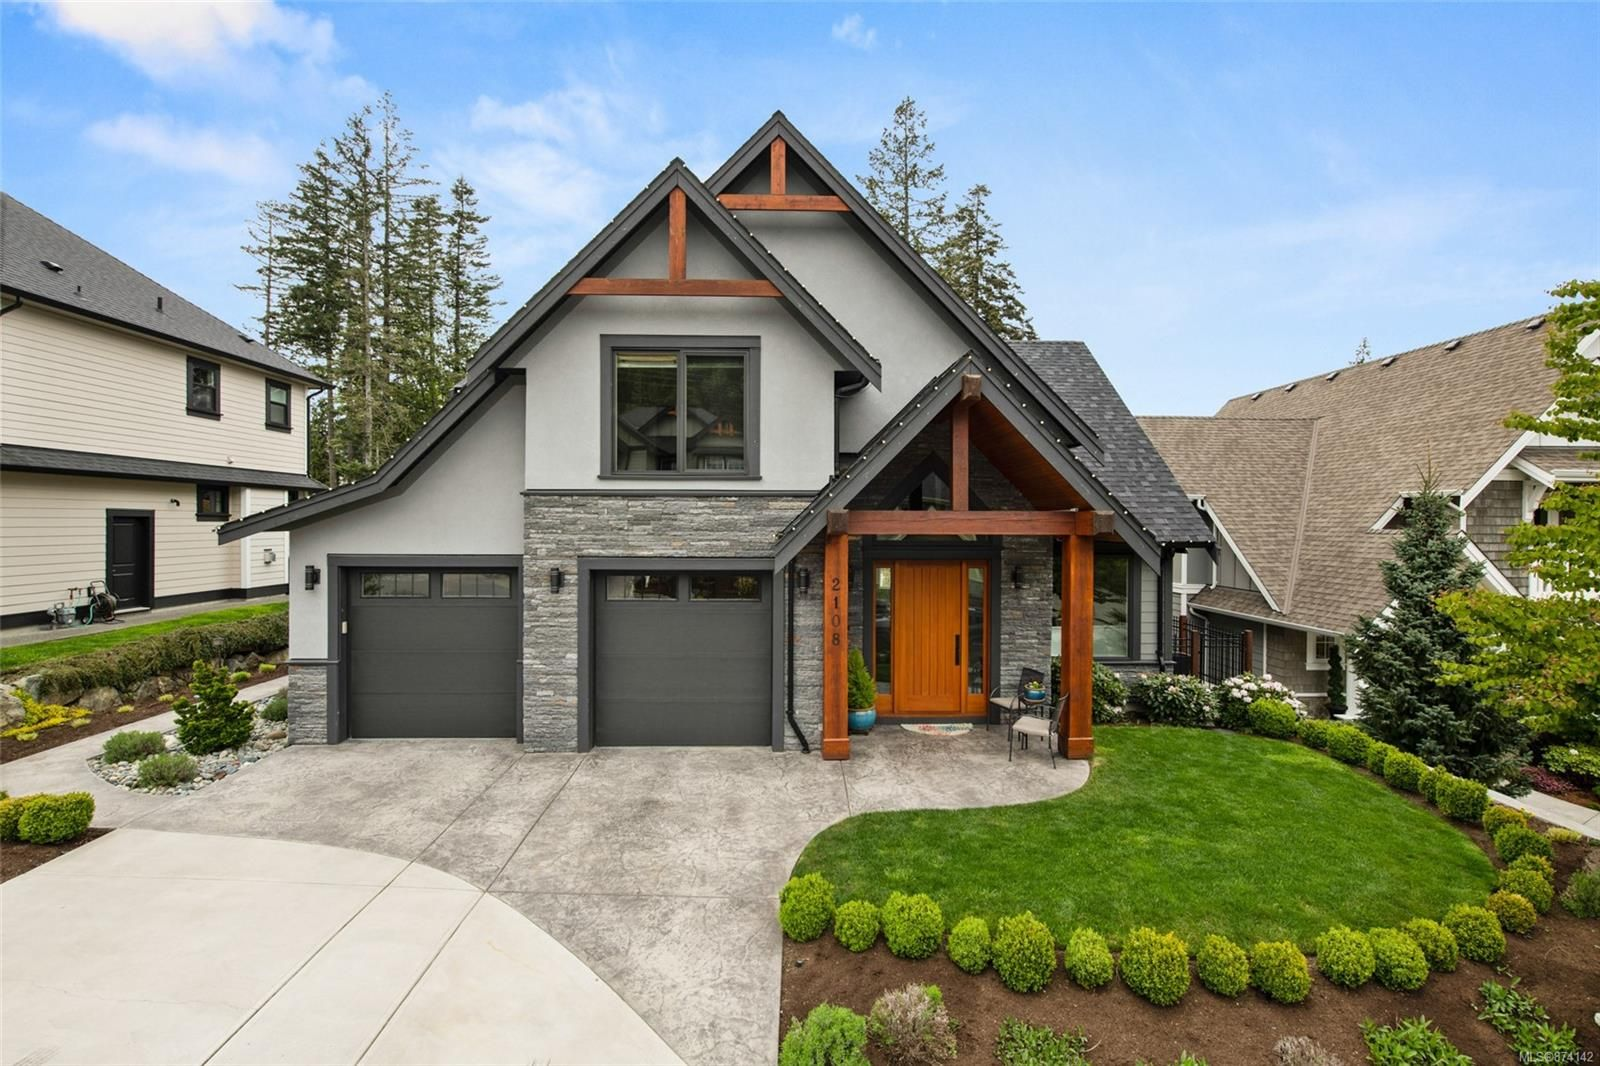 Main Photo: 2108 Champions Way in : La Bear Mountain House for sale (Langford)  : MLS®# 874142